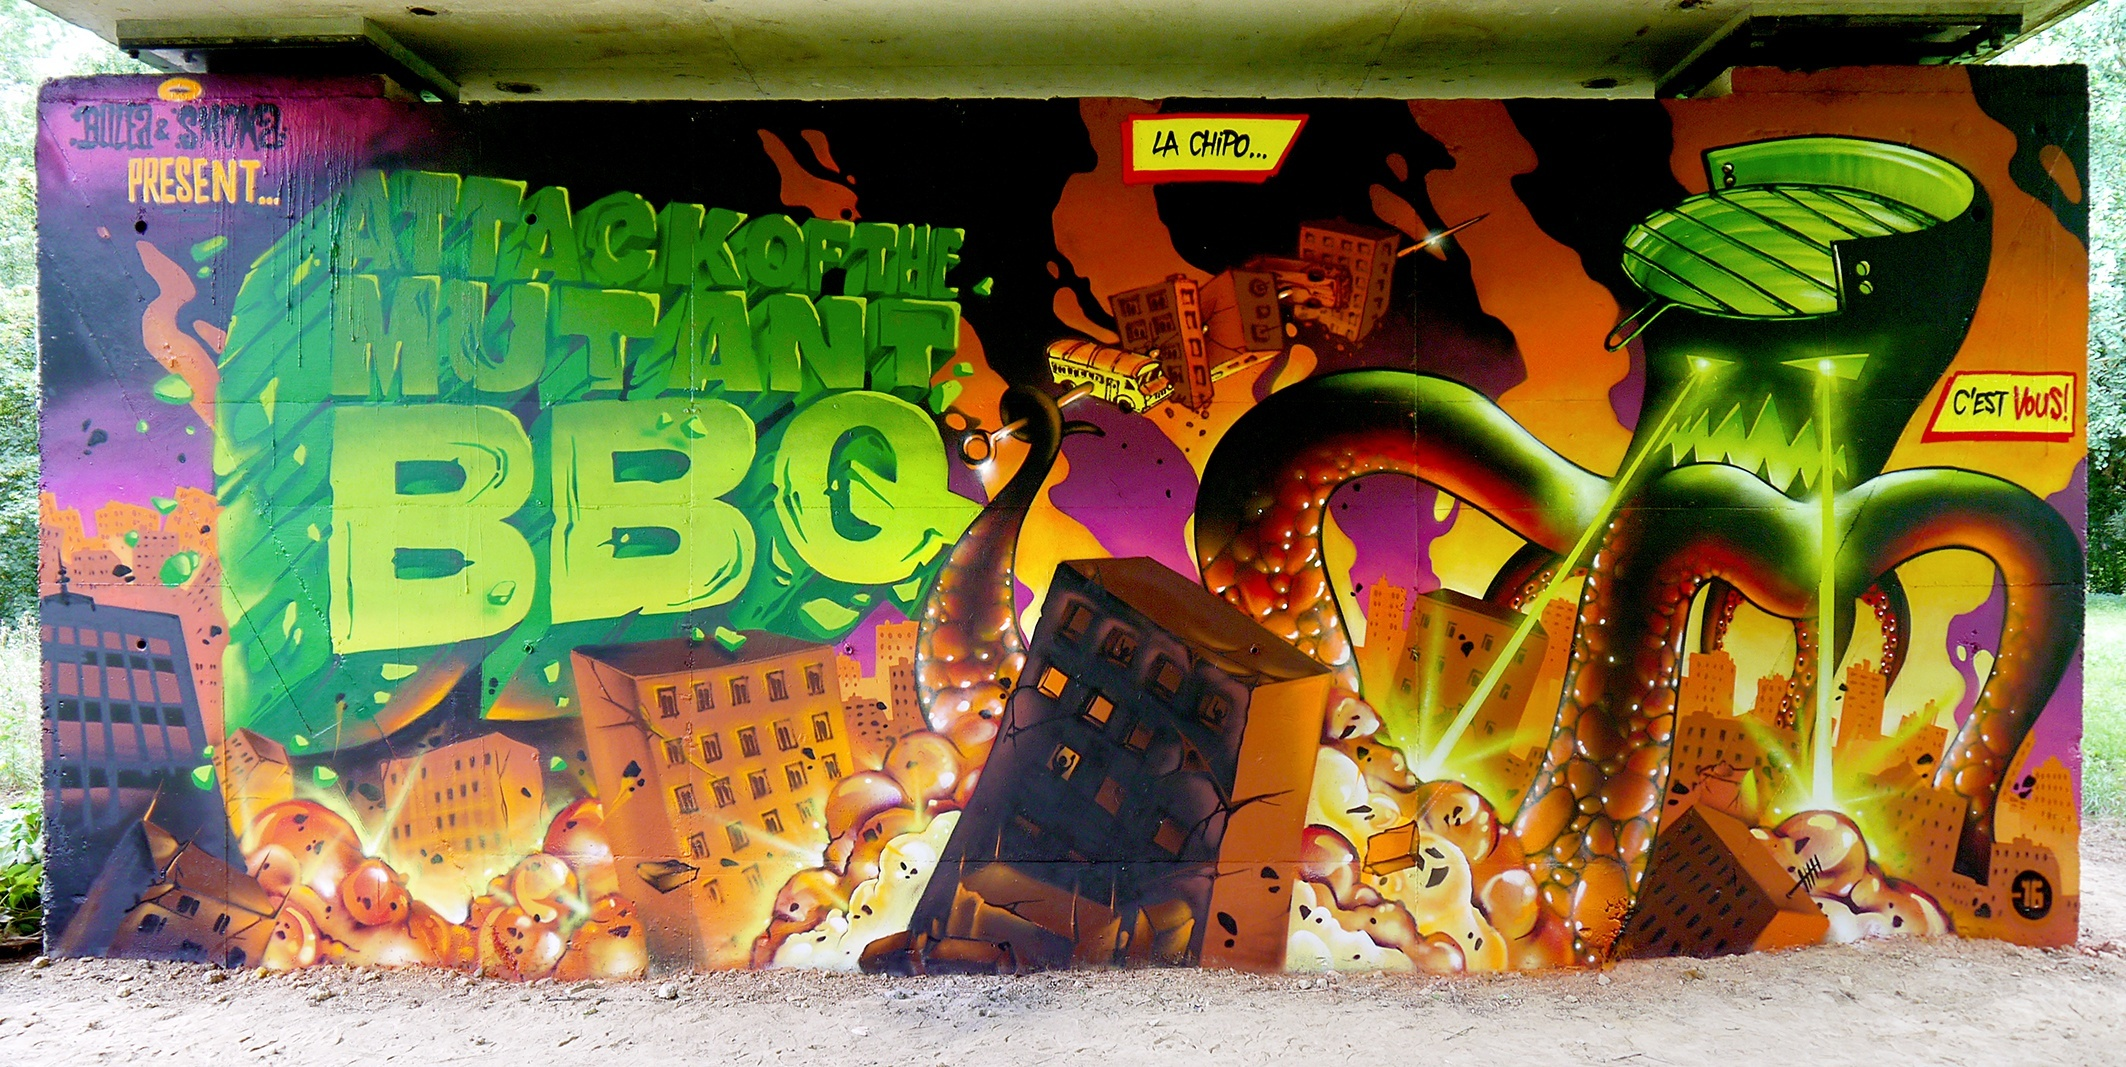 ATTACK OF THE MUTANT BBQ